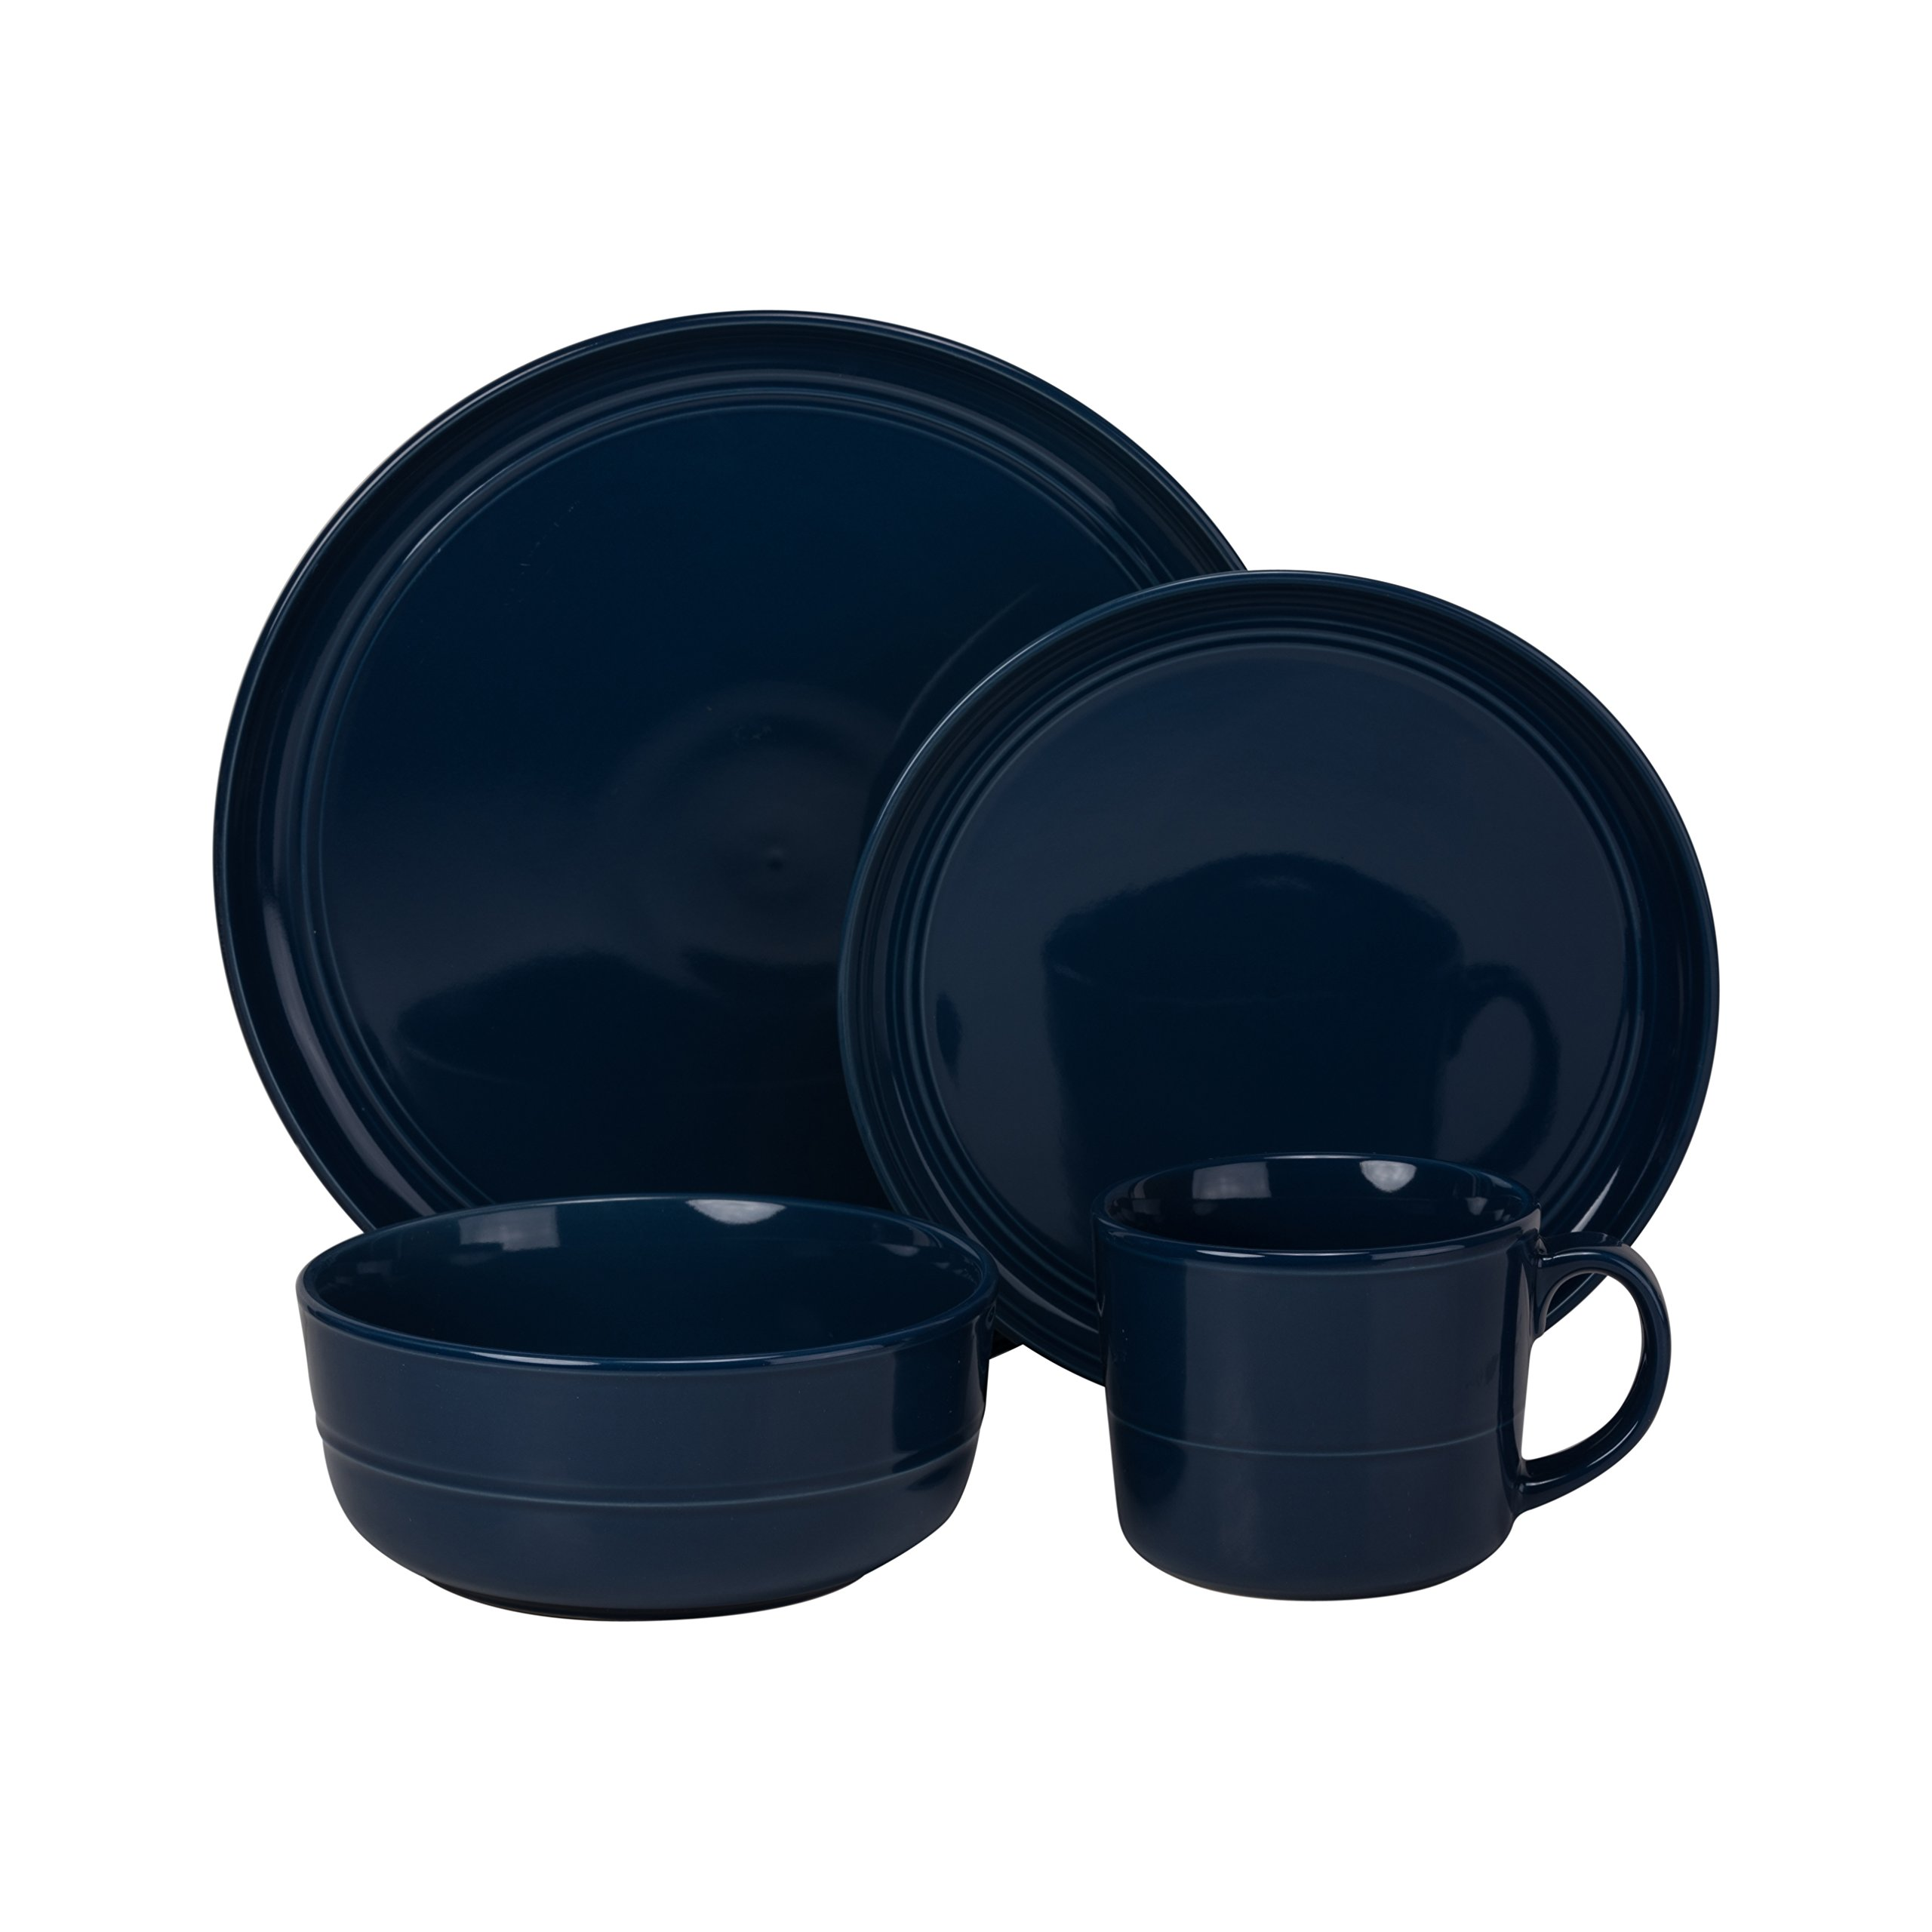 10 Strawberry Street DBL-1600CBLT-OS Double Line 16 Piece Dinnerware Set, Cobalt by 10 Strawberry Street